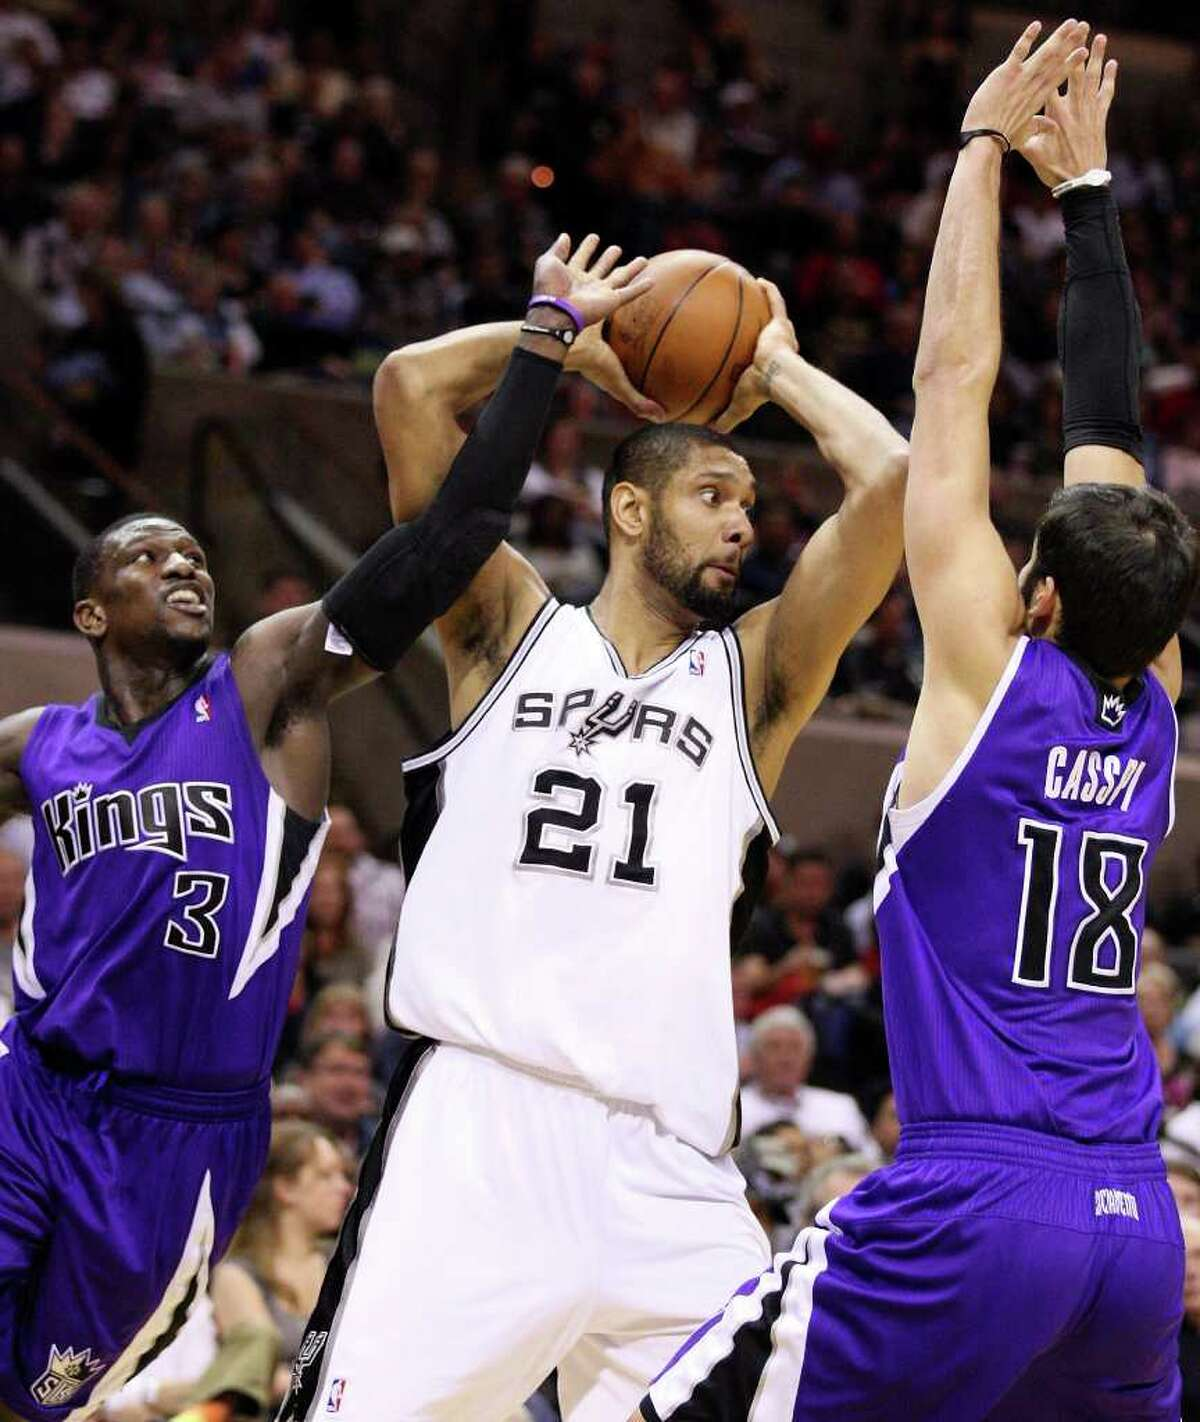 Spurs' Tim Duncan looks to pass between Kings' Jermaine Taylor and Kings' Omri Casspi during second half action Friday March 11, 2011 at the AT&T Center. The Spurs won 108-103. (PHOTO BY EDWARD A. ORNELAS/eaornelas@express-news.net)